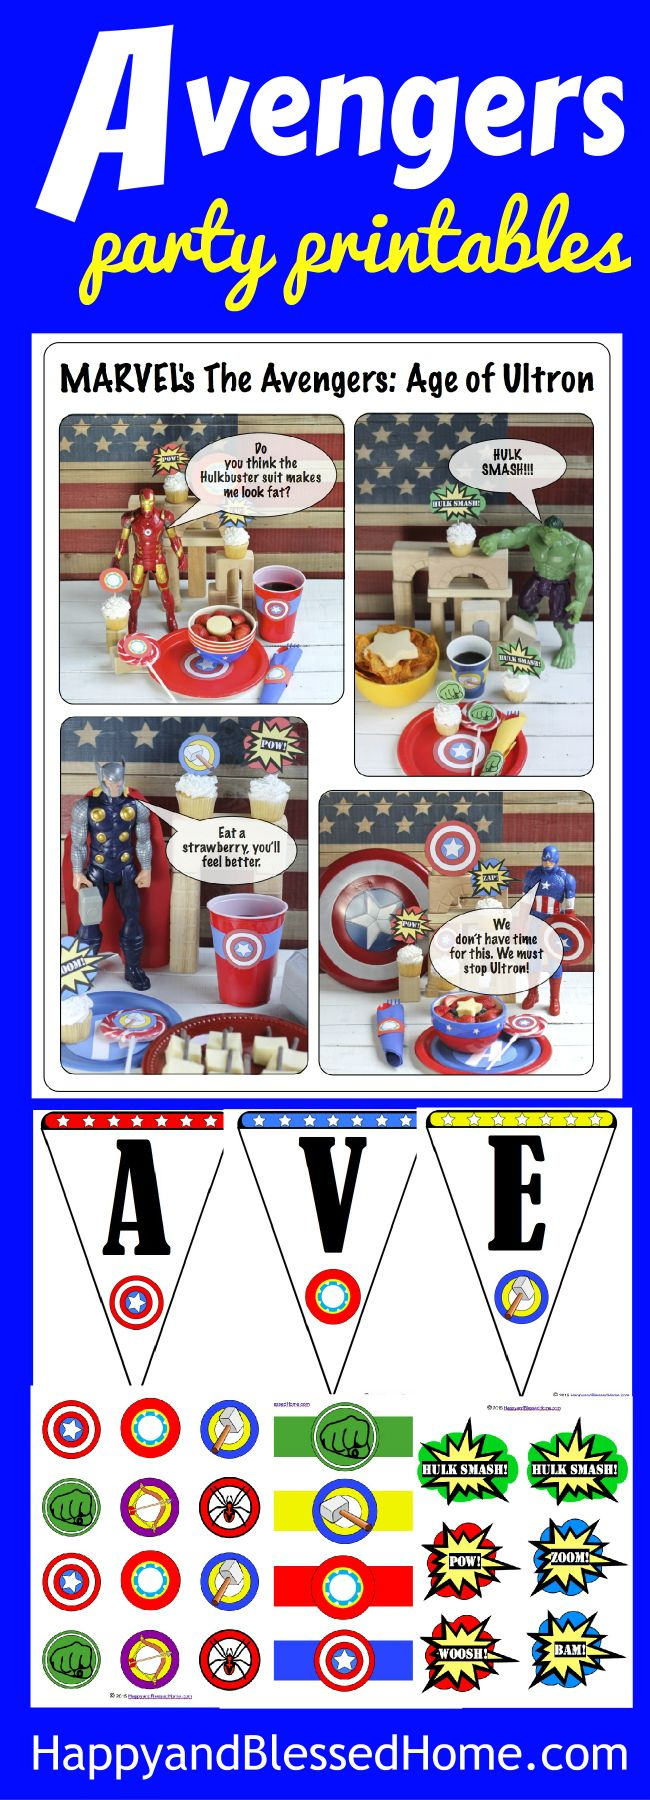 Avengers Party Printables free for a limited time - perfect for hosting your own Superhero themed party - So FUN! Great DIY birthday party idea with cake toppers, Avengers Party banner, napkin ring holders, cup labels, and table scatter.